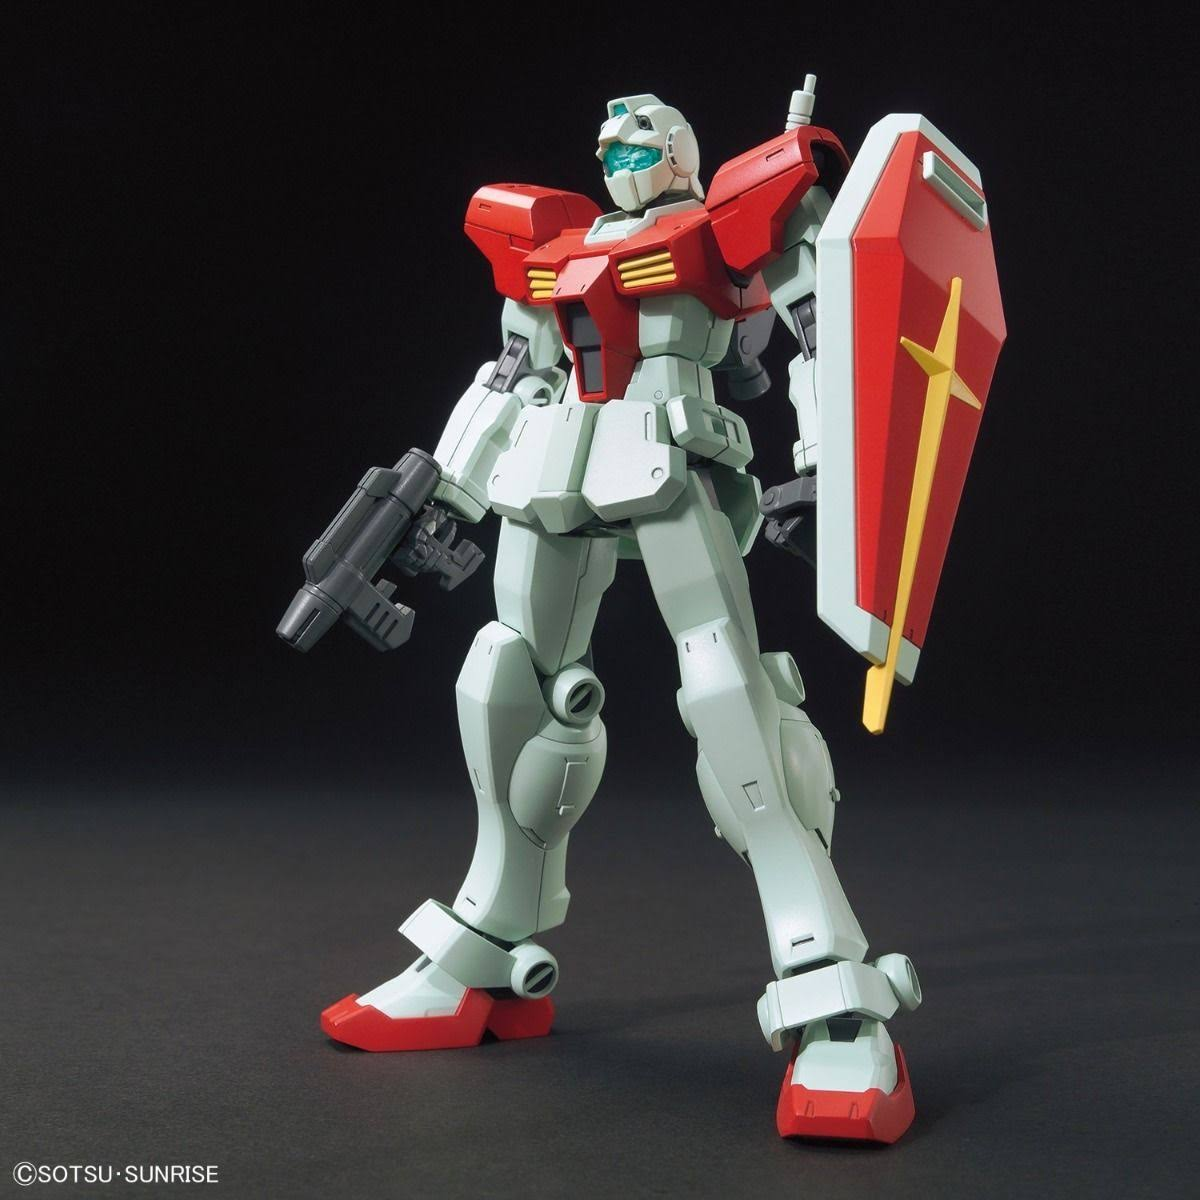 Bandai Gundam High Grade Build Fighters Model Kit - Scale 1:144